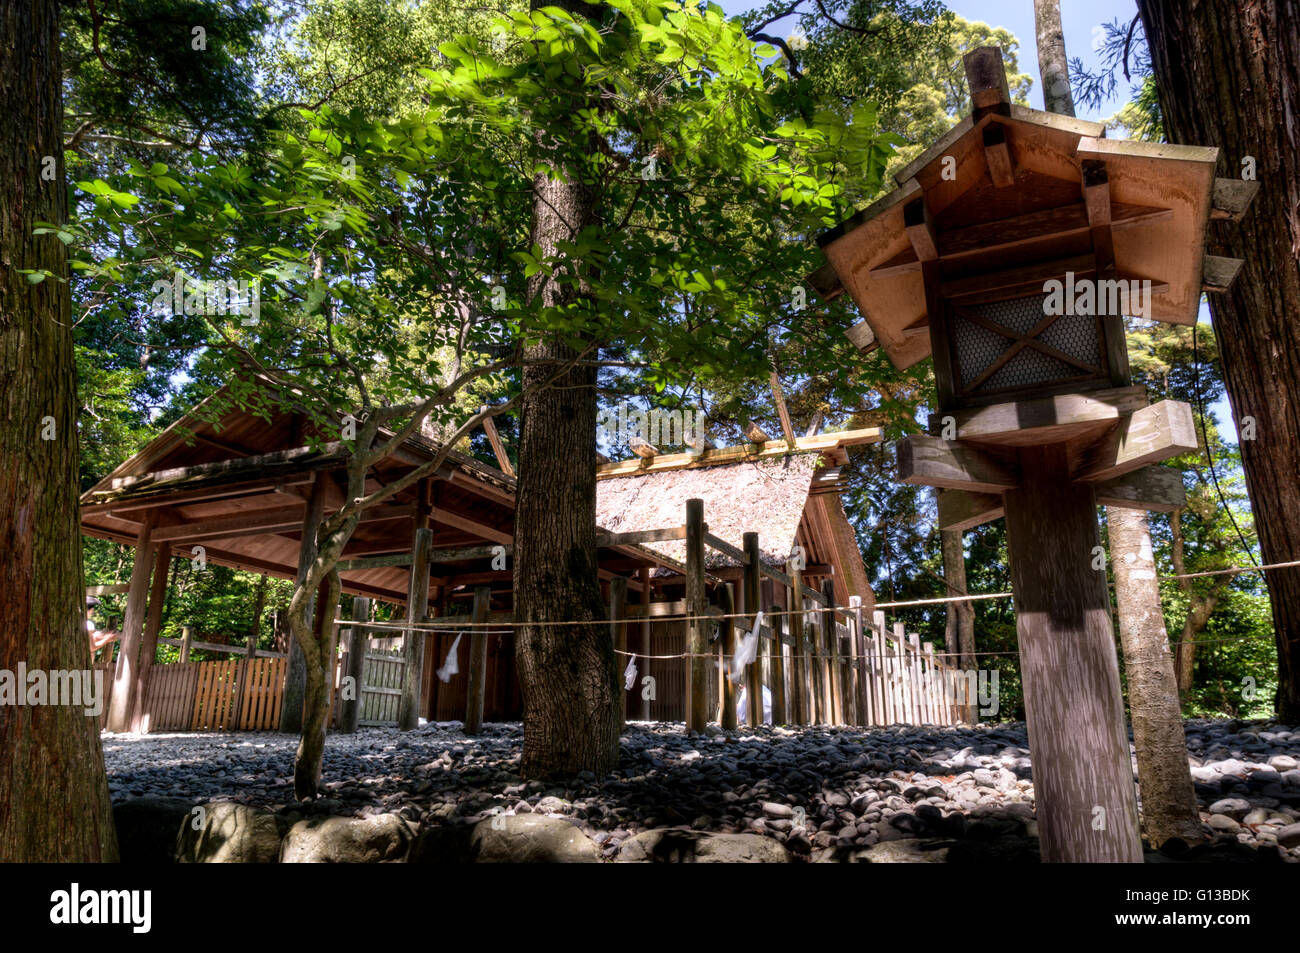 Shinto shrine at Ise Jingu complex, Japan - Stock Image